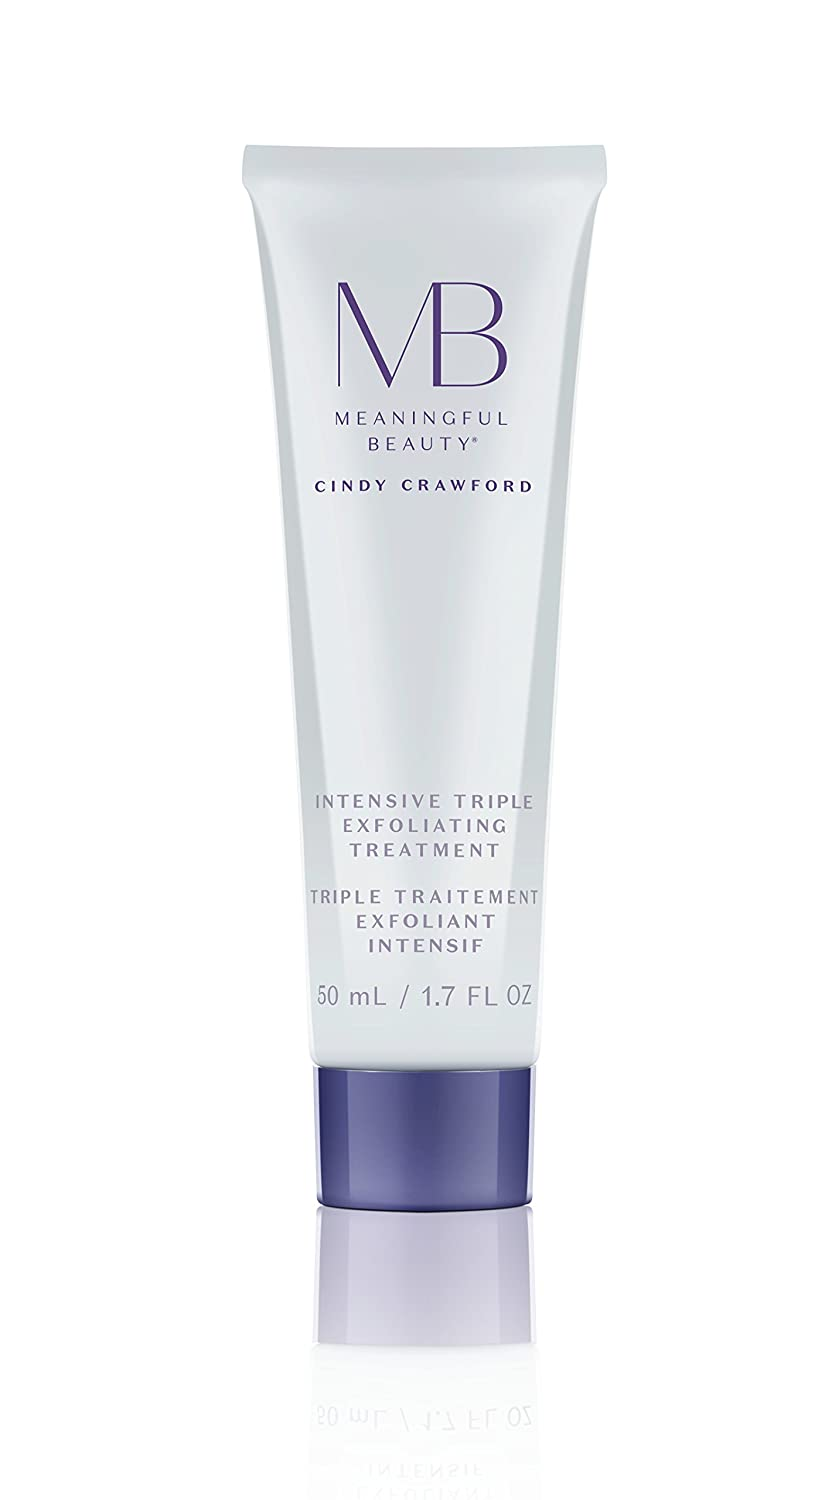 Meaningful Beauty Intensive Triple Exfoliating Treatment